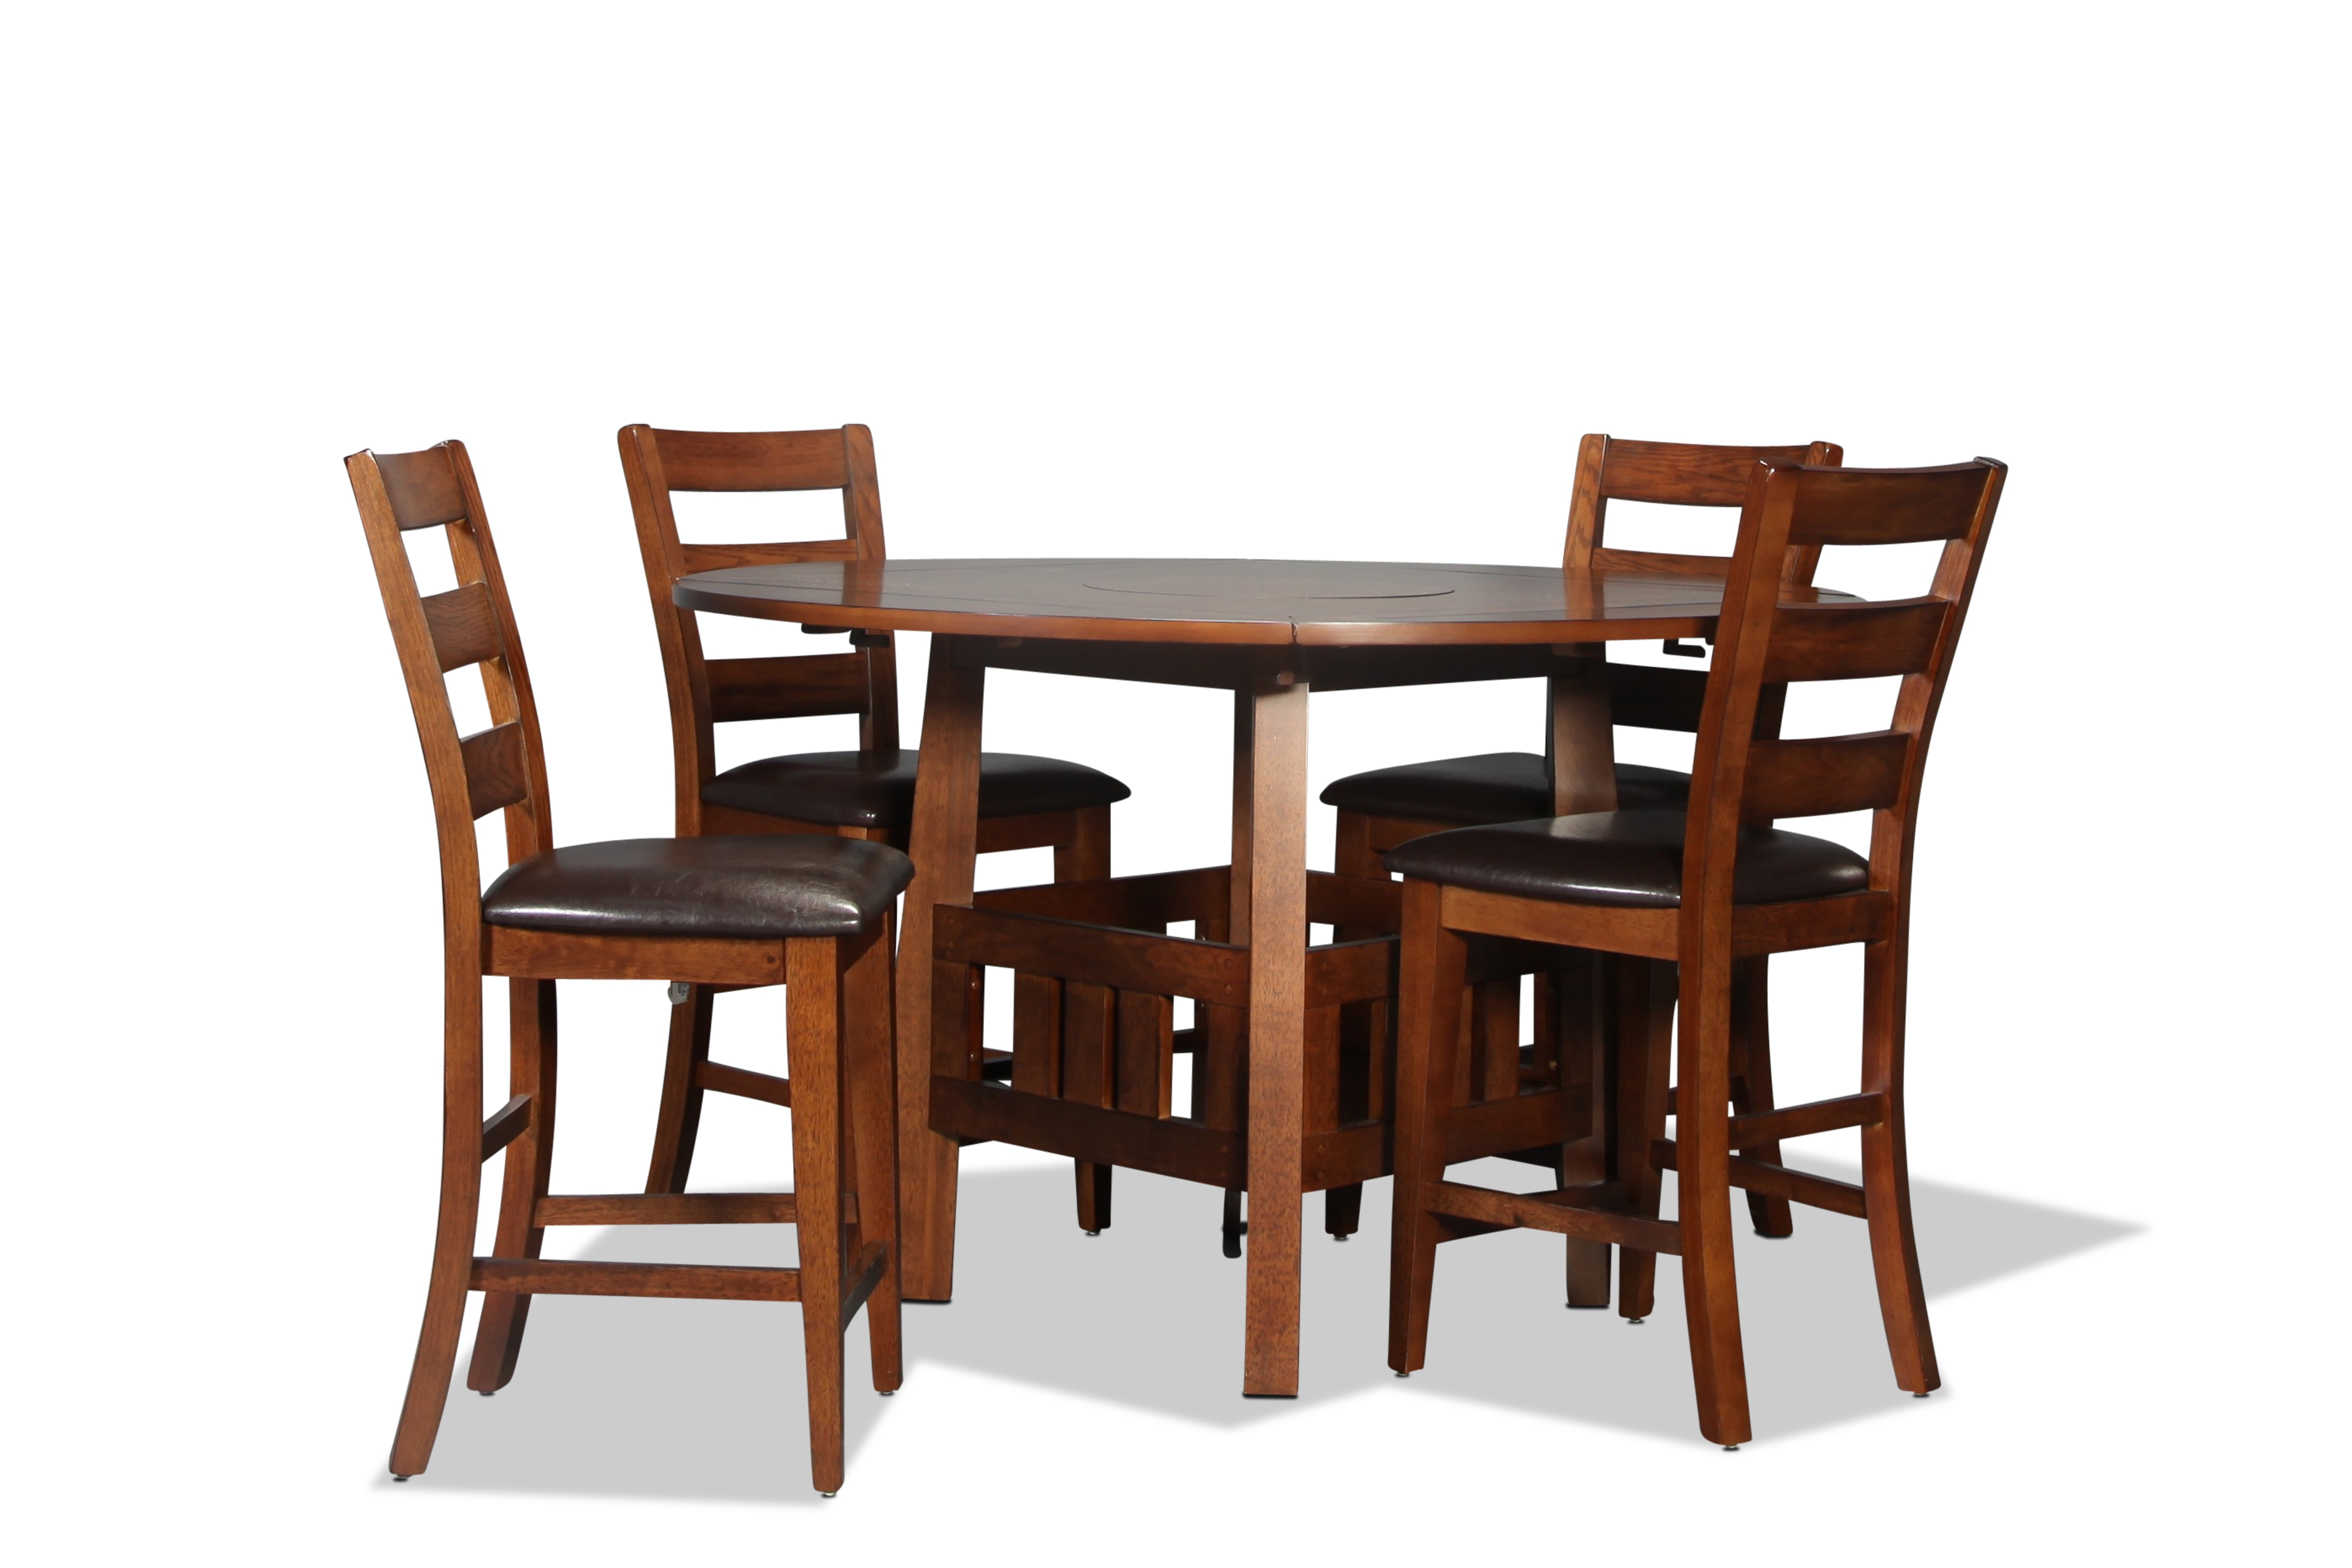 The Graham Collection Levin Furniture